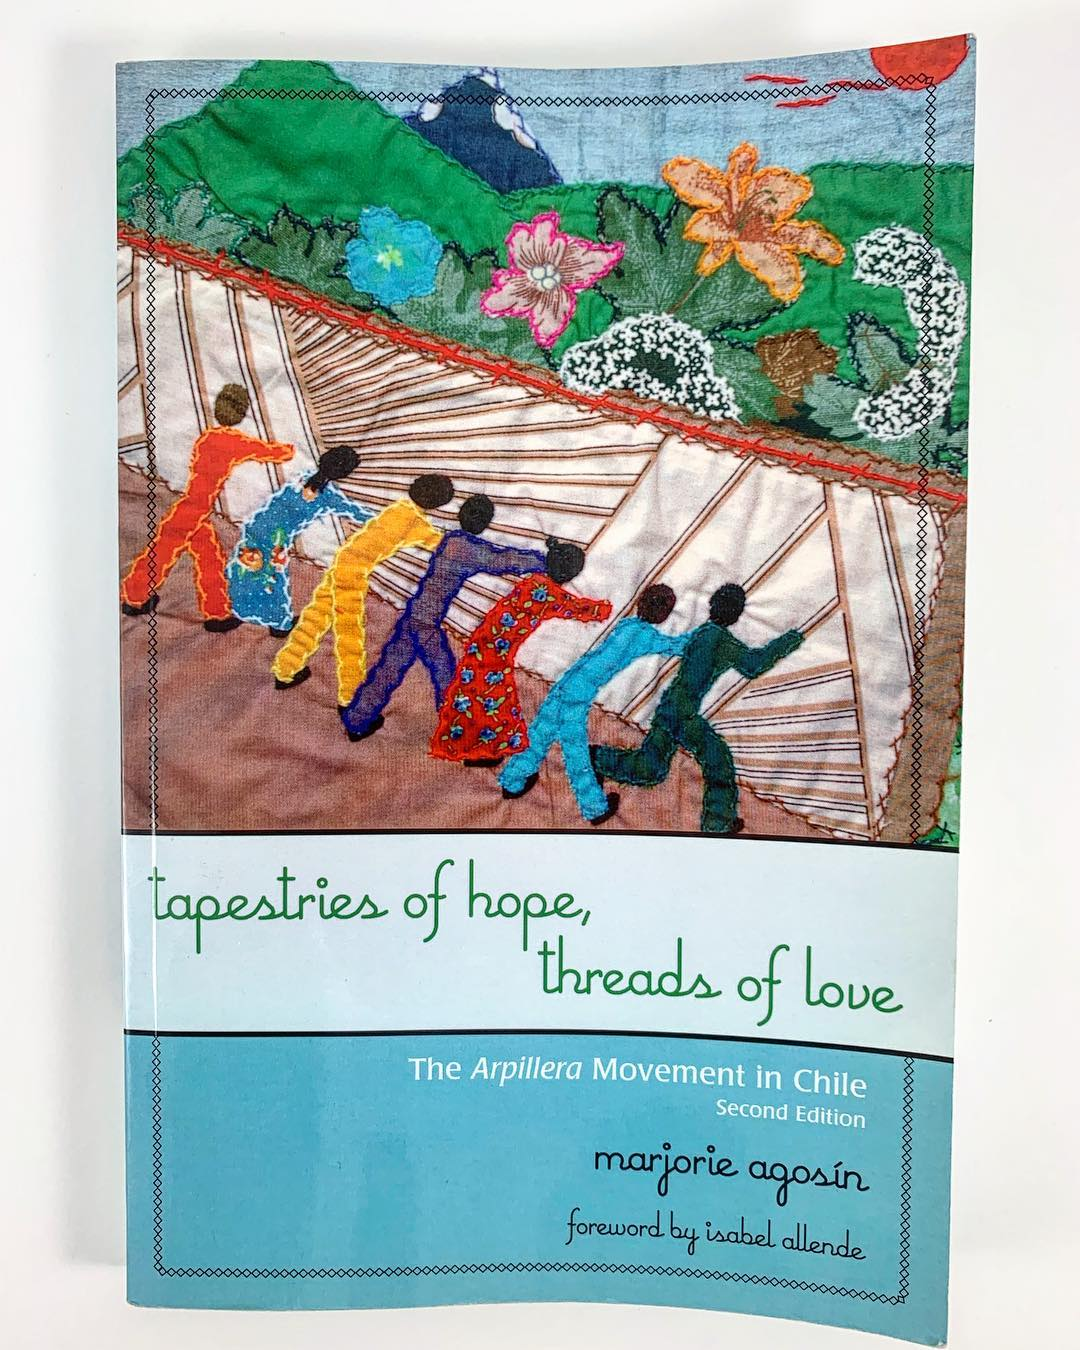 Book cover of a textile with human likes figures in front of a wall-like structure in front of a mountain landscape.